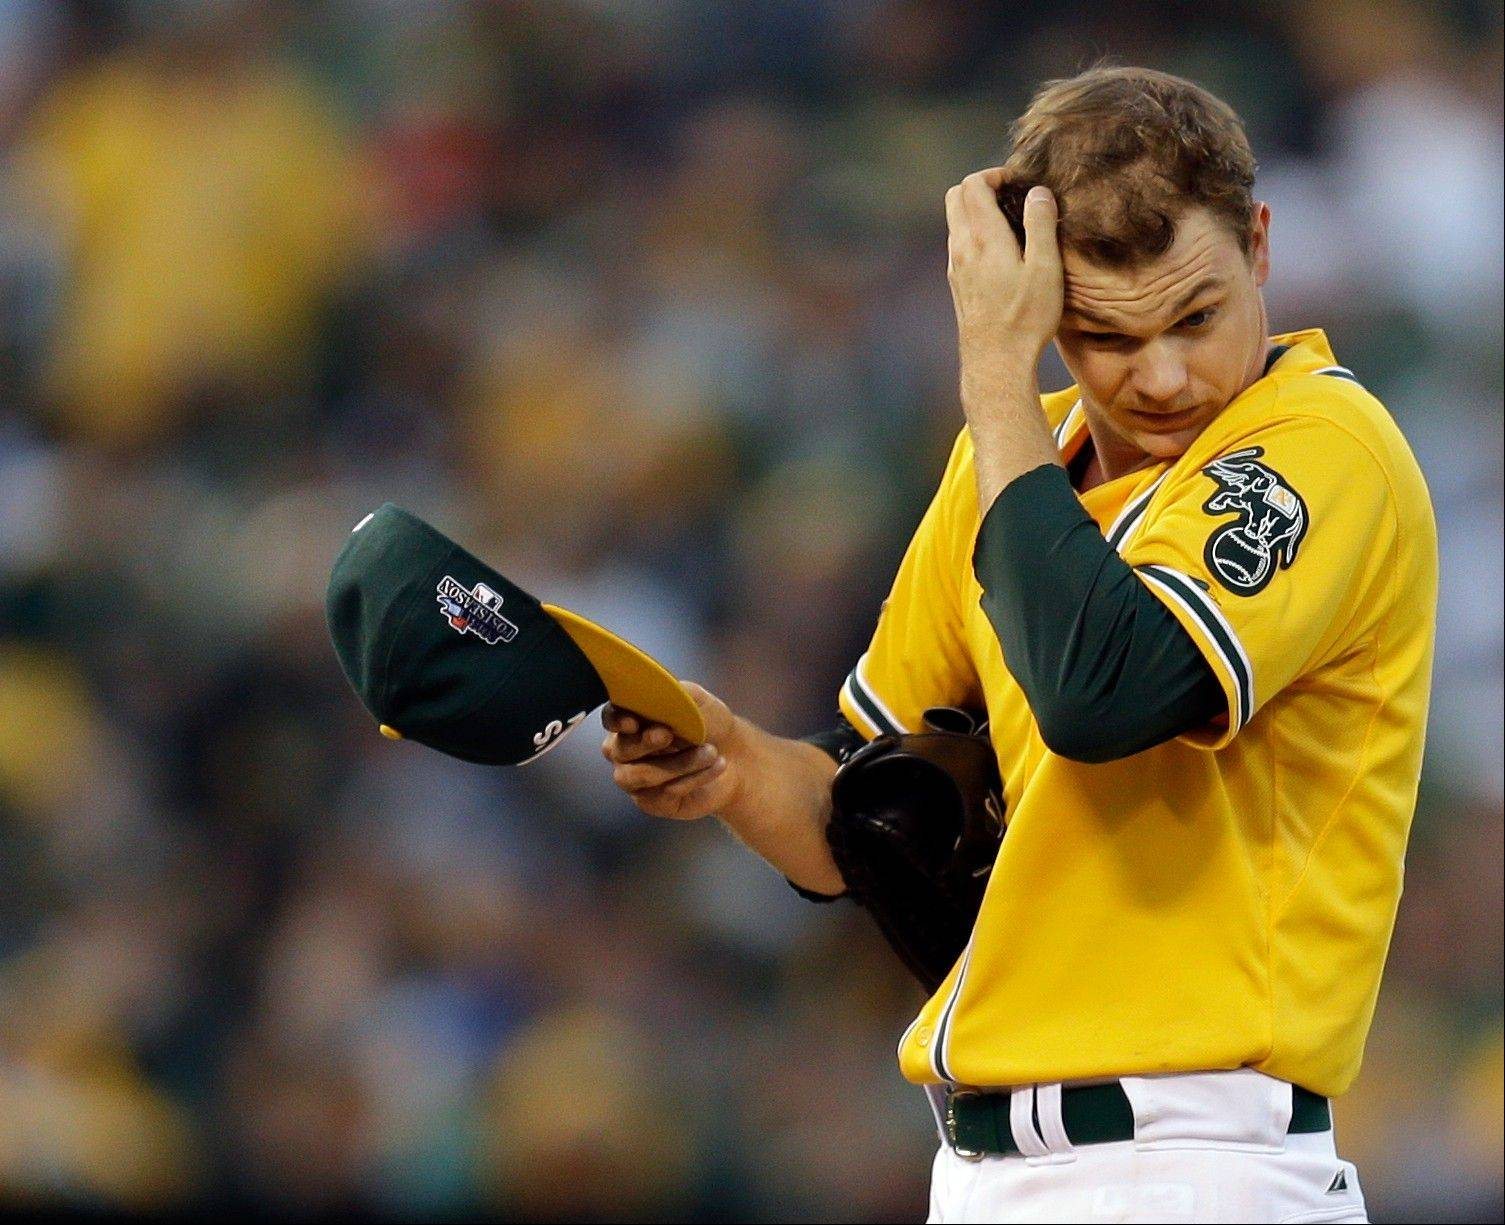 Athletics starting pitcher Sonny Gray adjusts his cap after loading the bases in the fourth inning of Game 5 Thursday in Oakland.